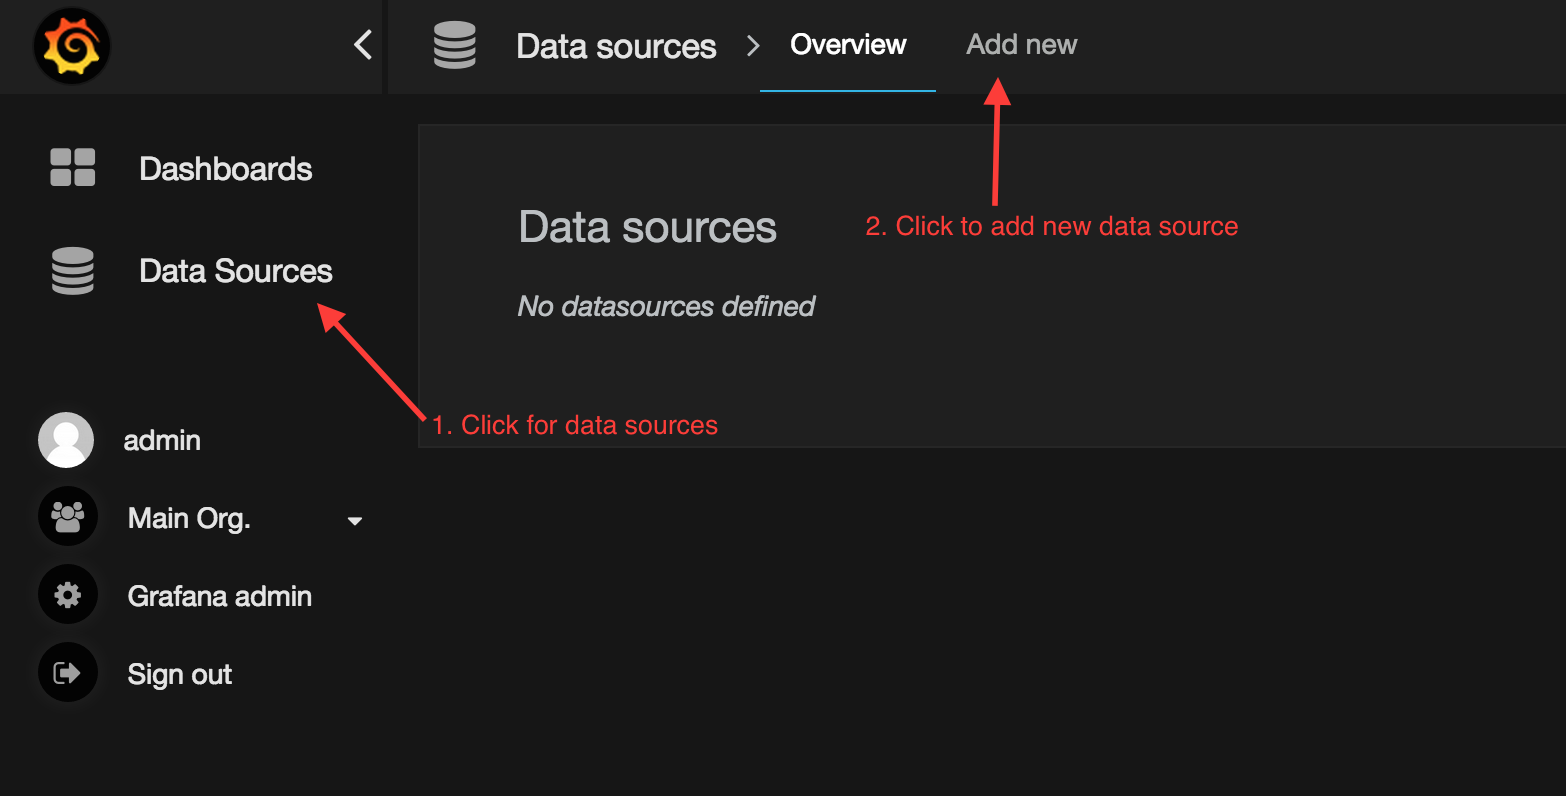 Grafana New Data Source